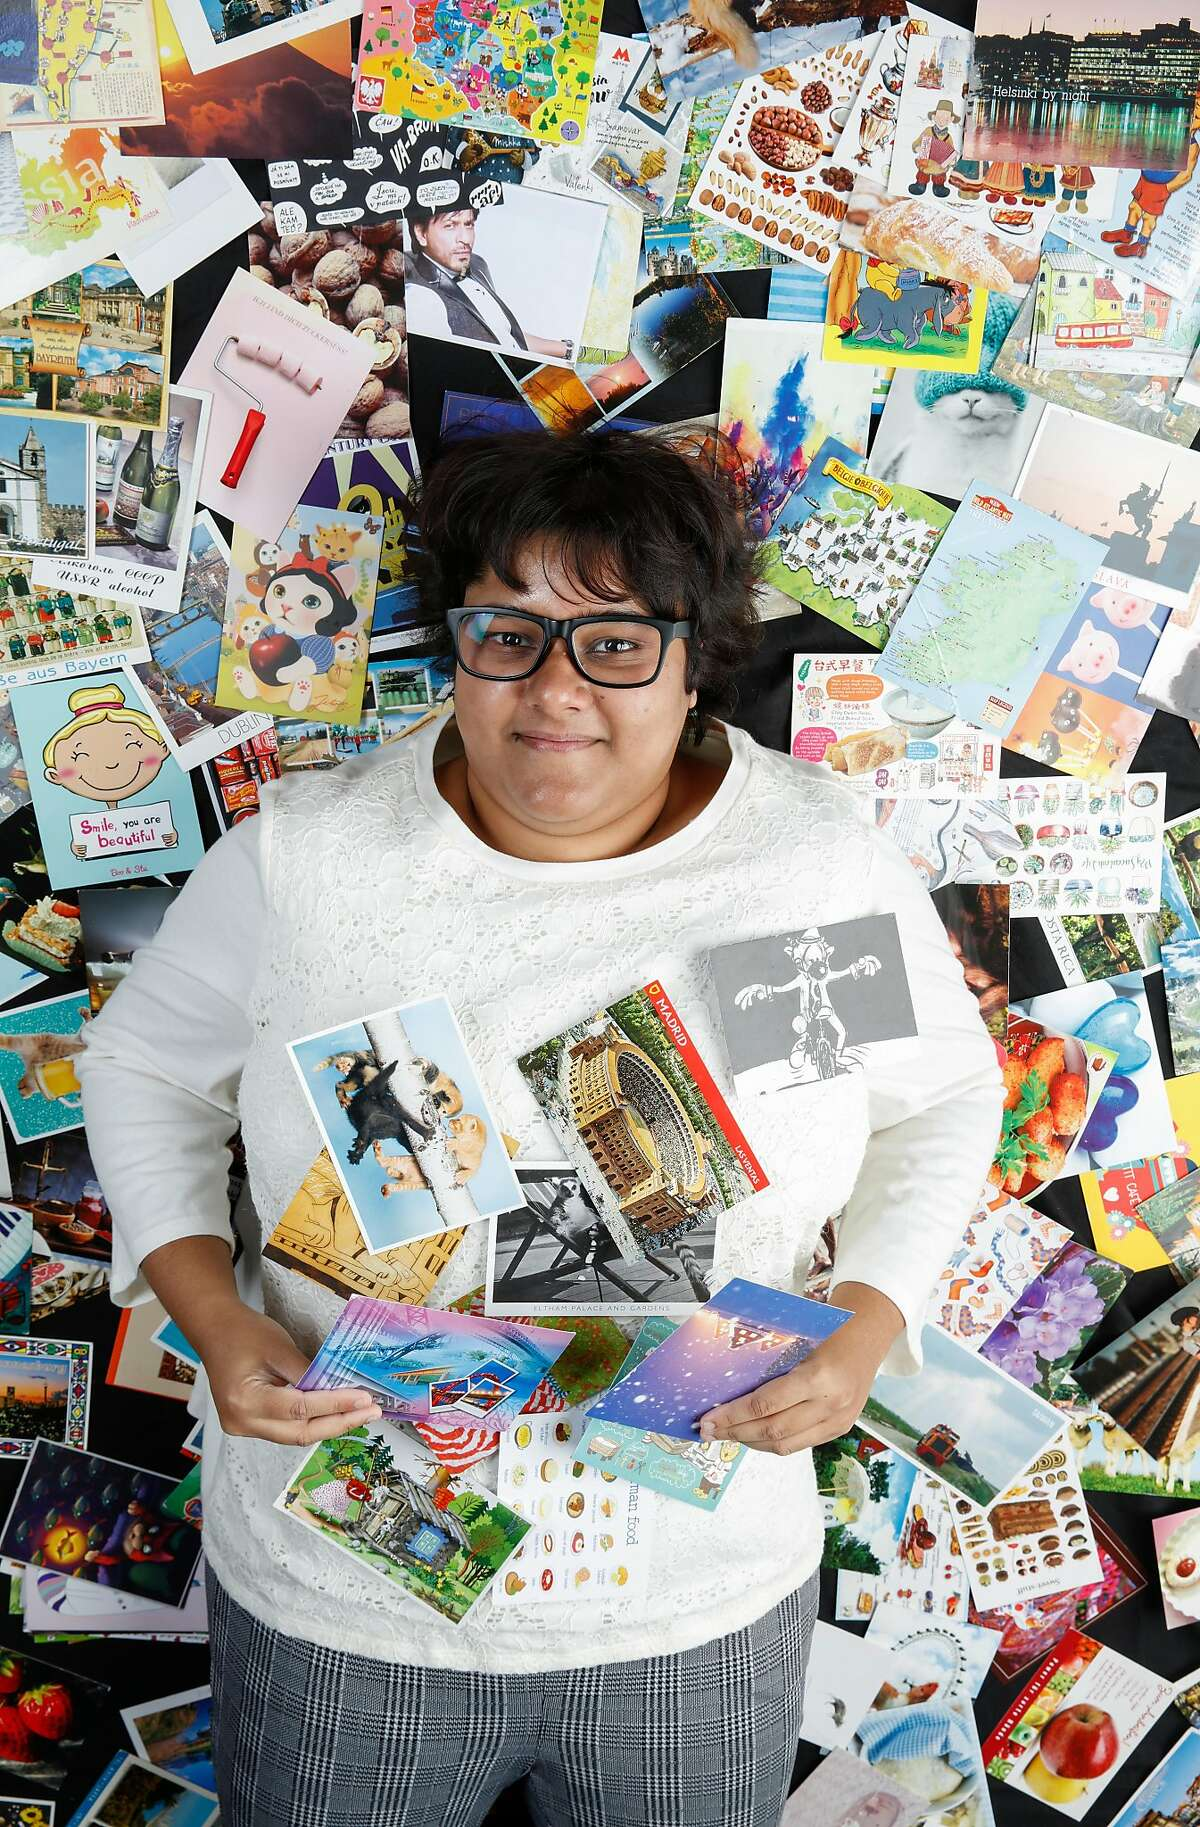 Rumana Sultana, seen on Monday, Sept. 23, 2019 in San Francisco, Calif., has amassed a collection of over 3,000 postcards from around the world in the 13 years she has been collecting them.